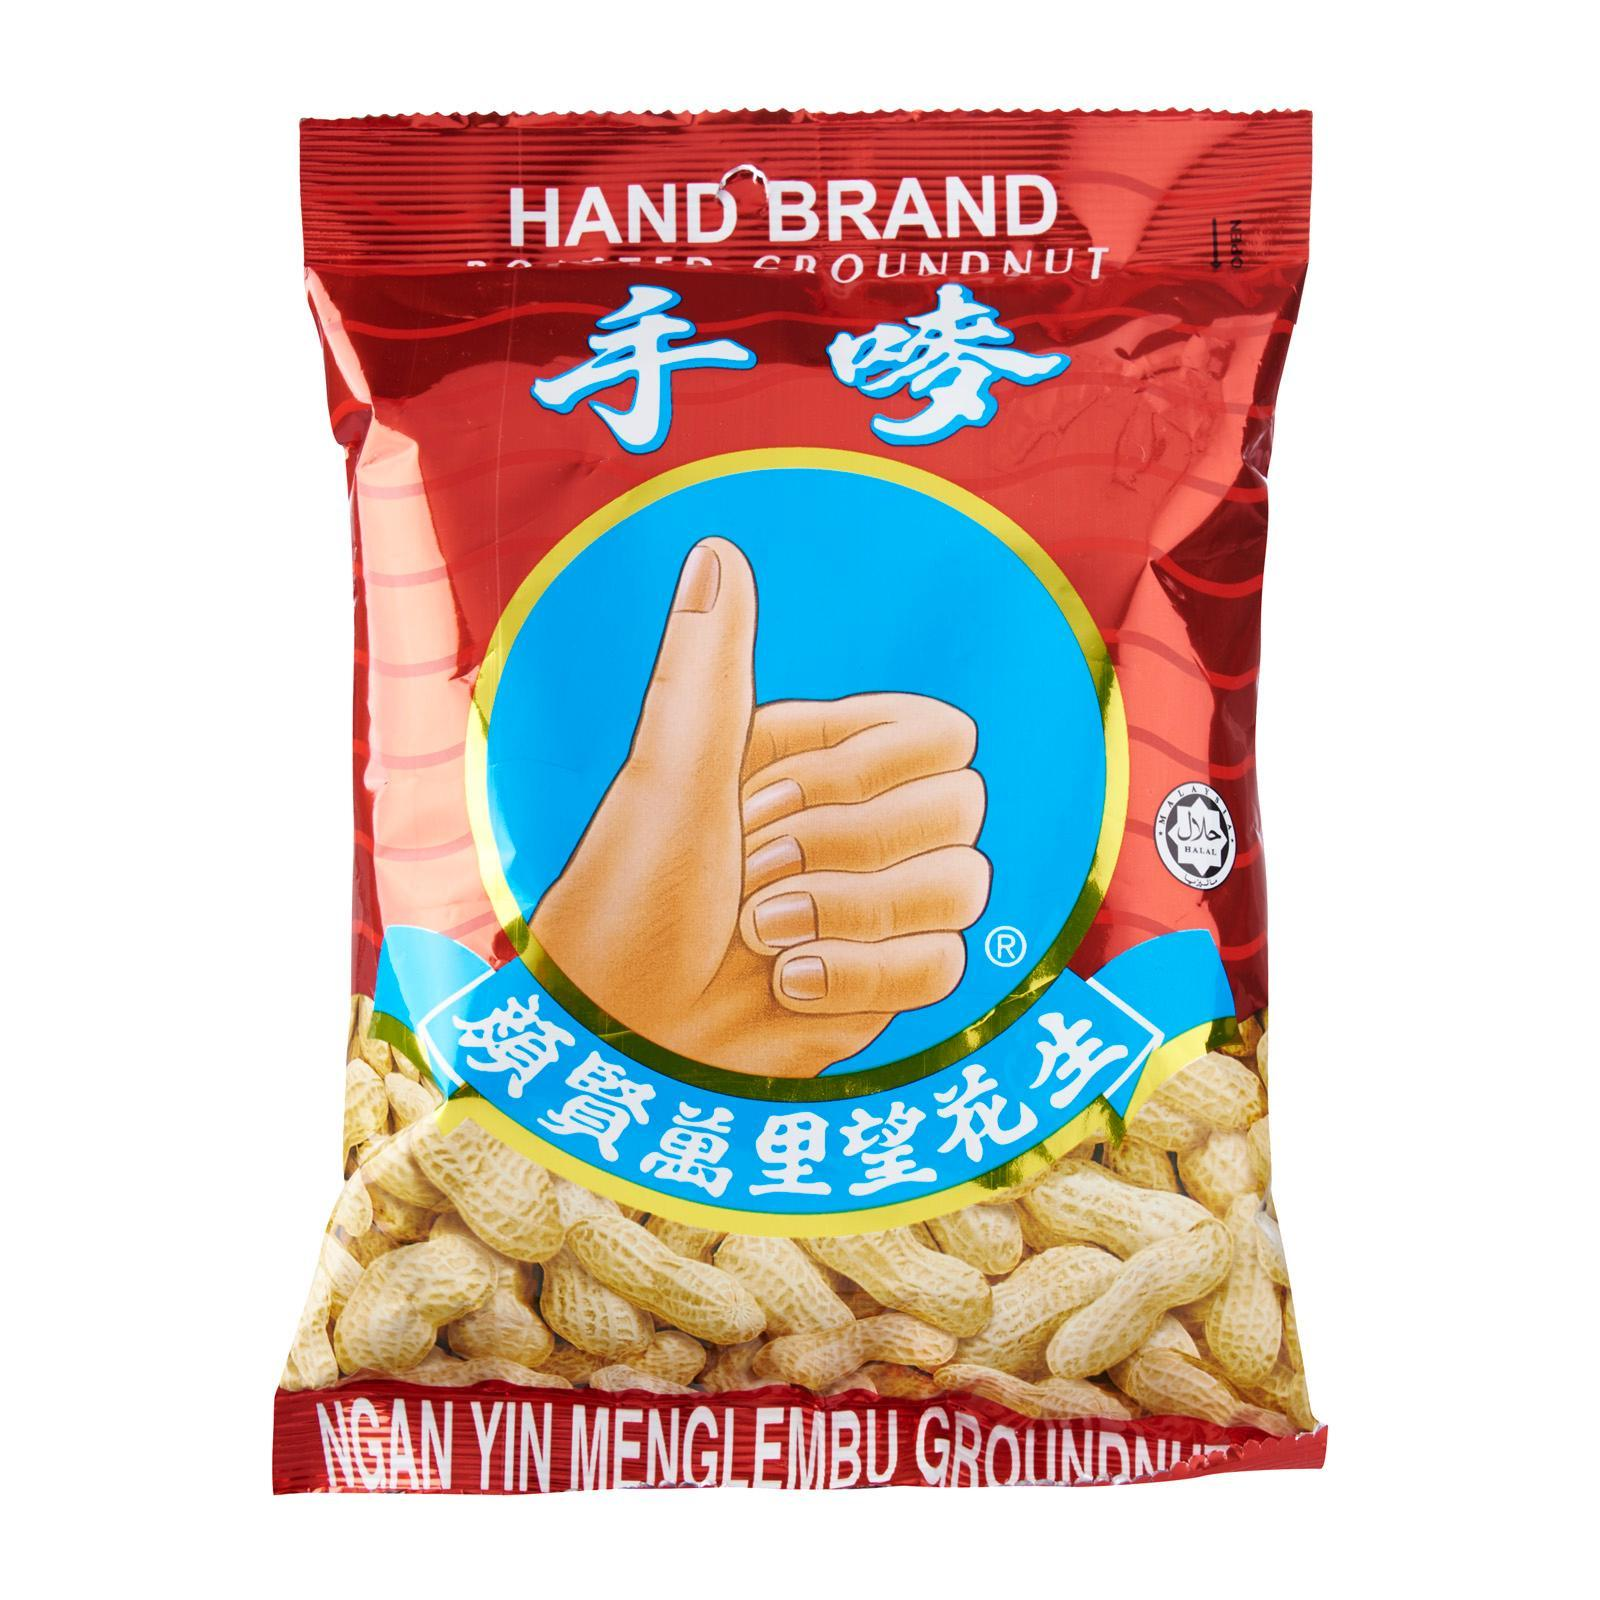 THUMBS Shandong Groundnut 120g